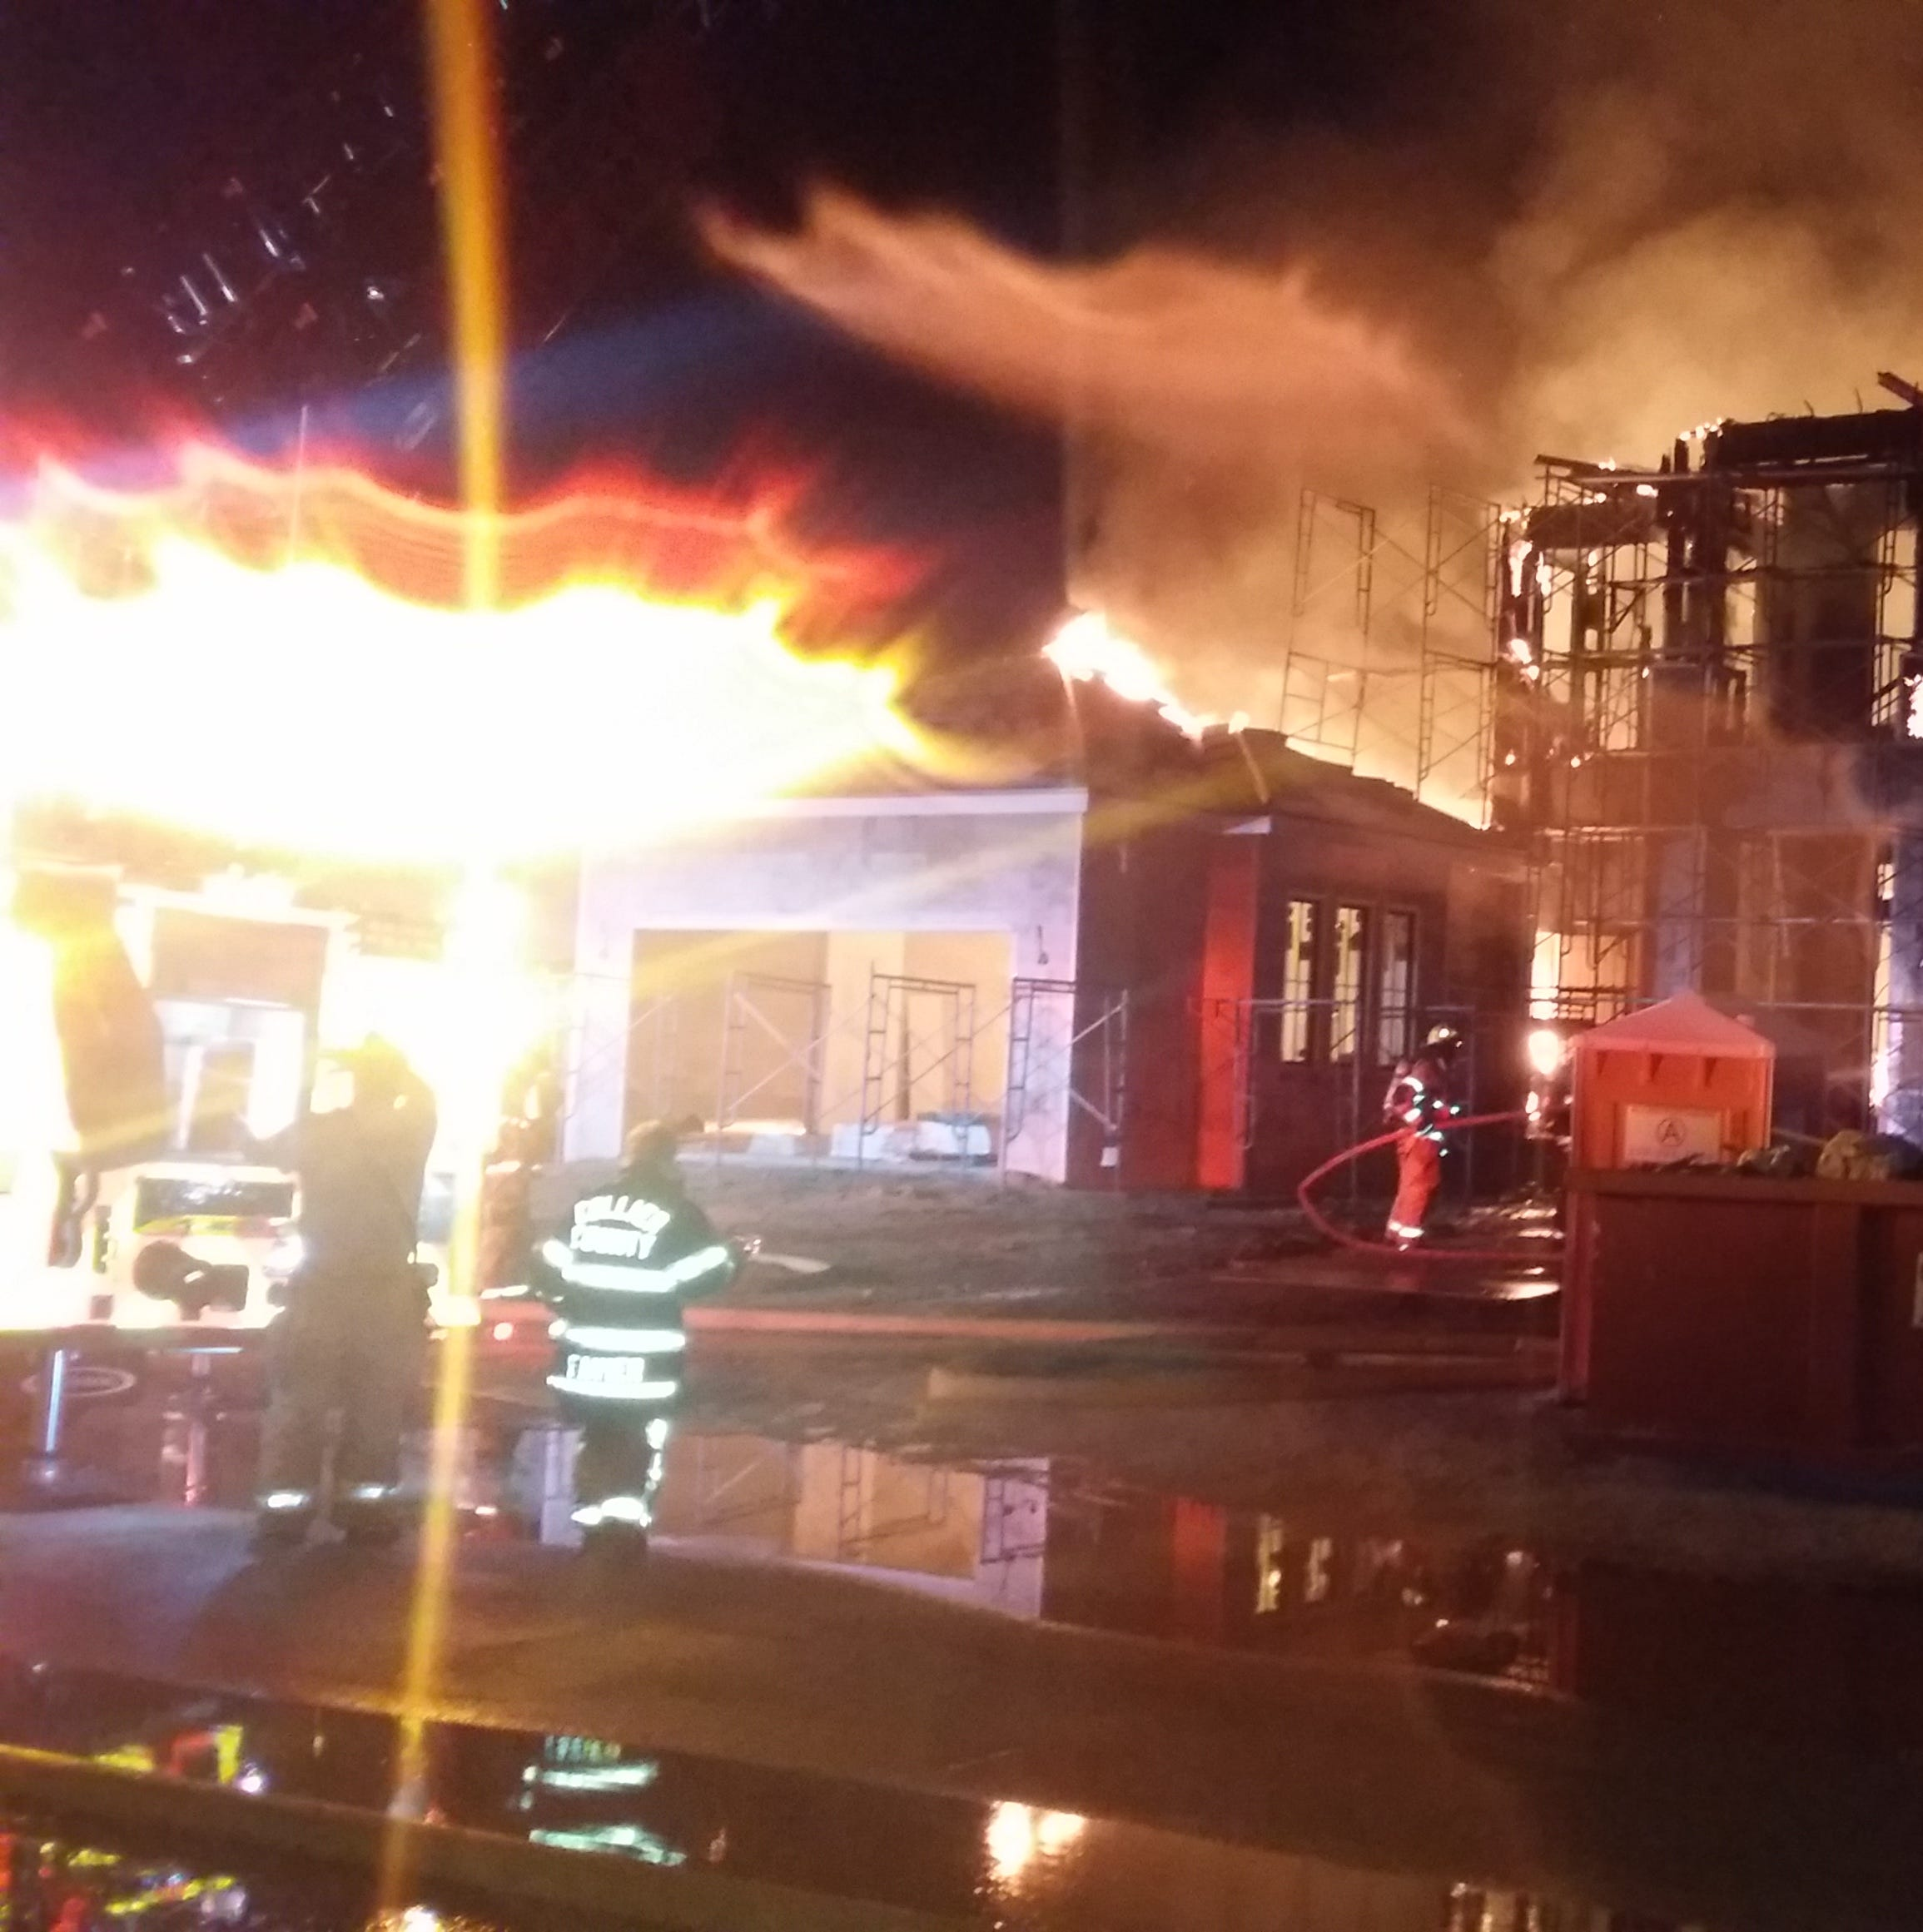 Overnight fire caused $2.5 million in damages to Marco Island home